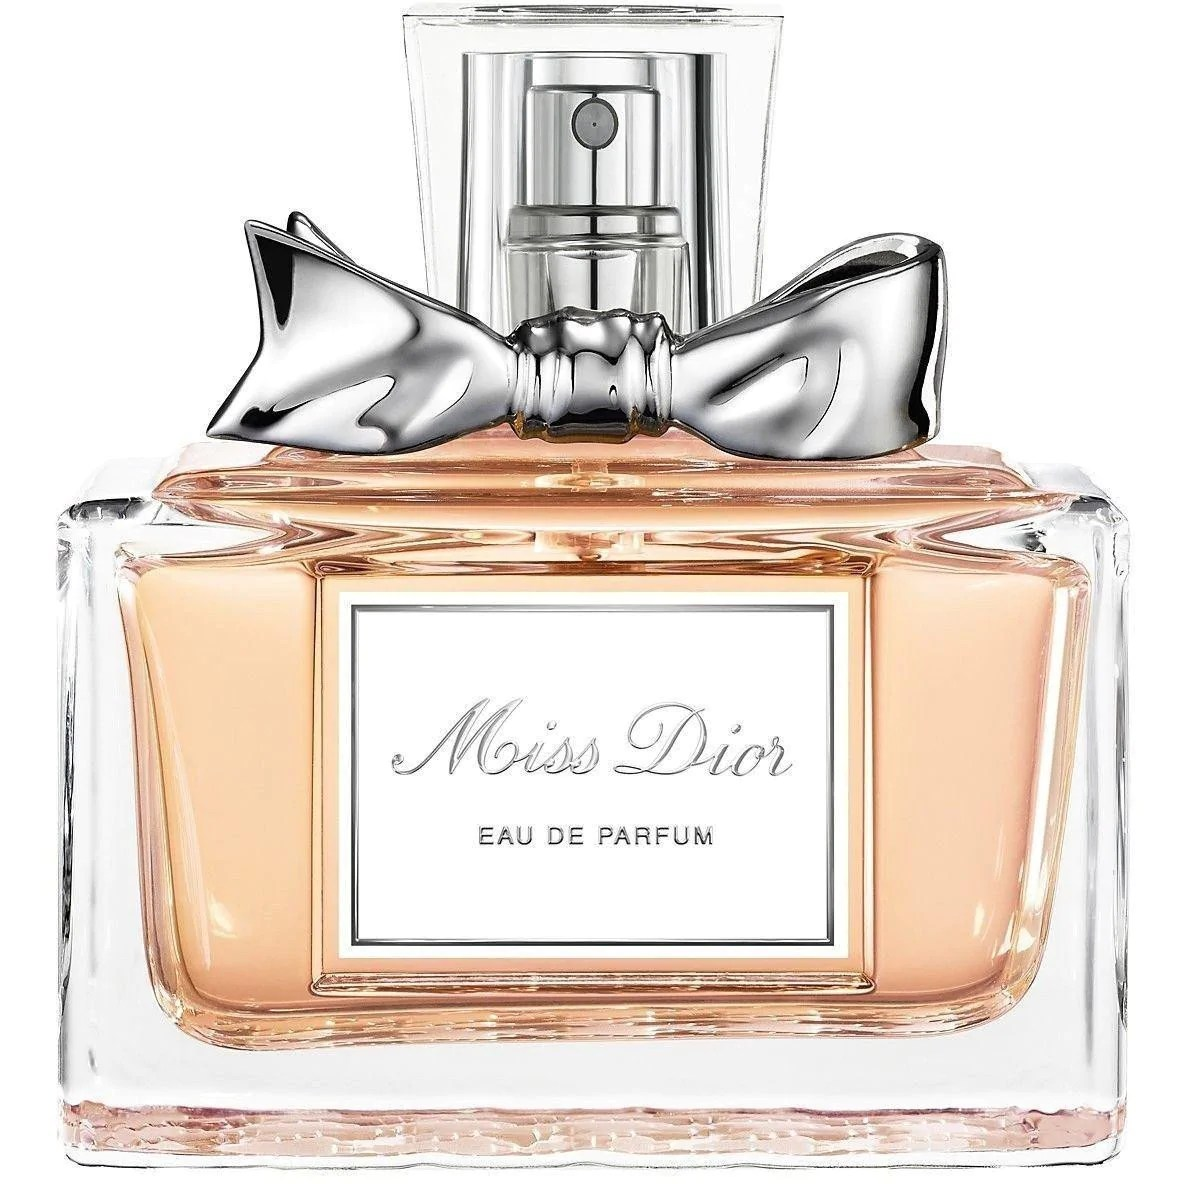 Edp Tester Miss Dior Christian Dior Women Edp Perfume Spray 3 4 Oz 3 3 New Tester